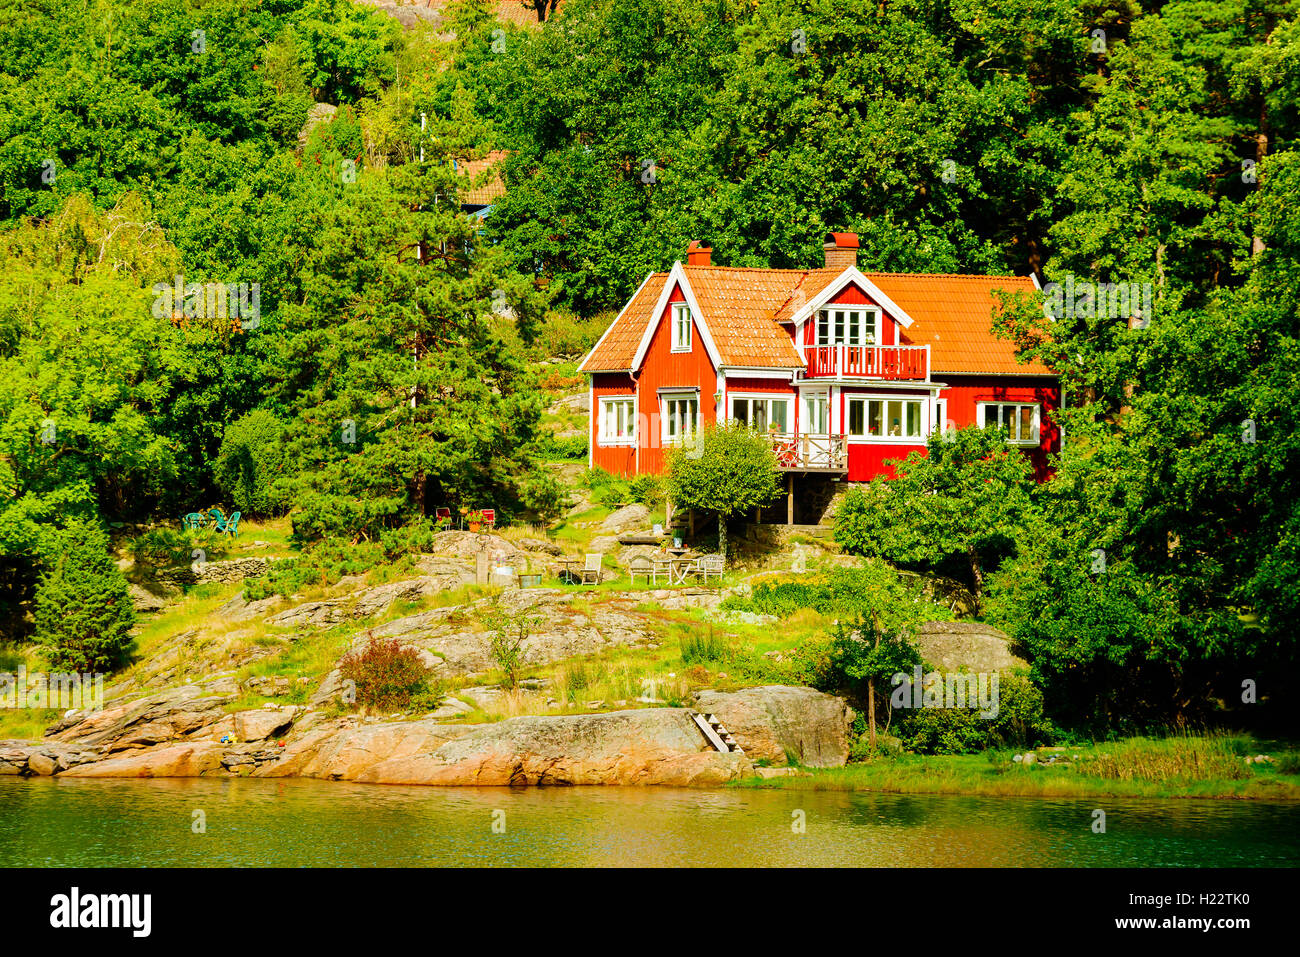 Askeron, Sweden - September 9, 2016: Environmental documentary of seaside home in woodland slope down to water. Stock Photo